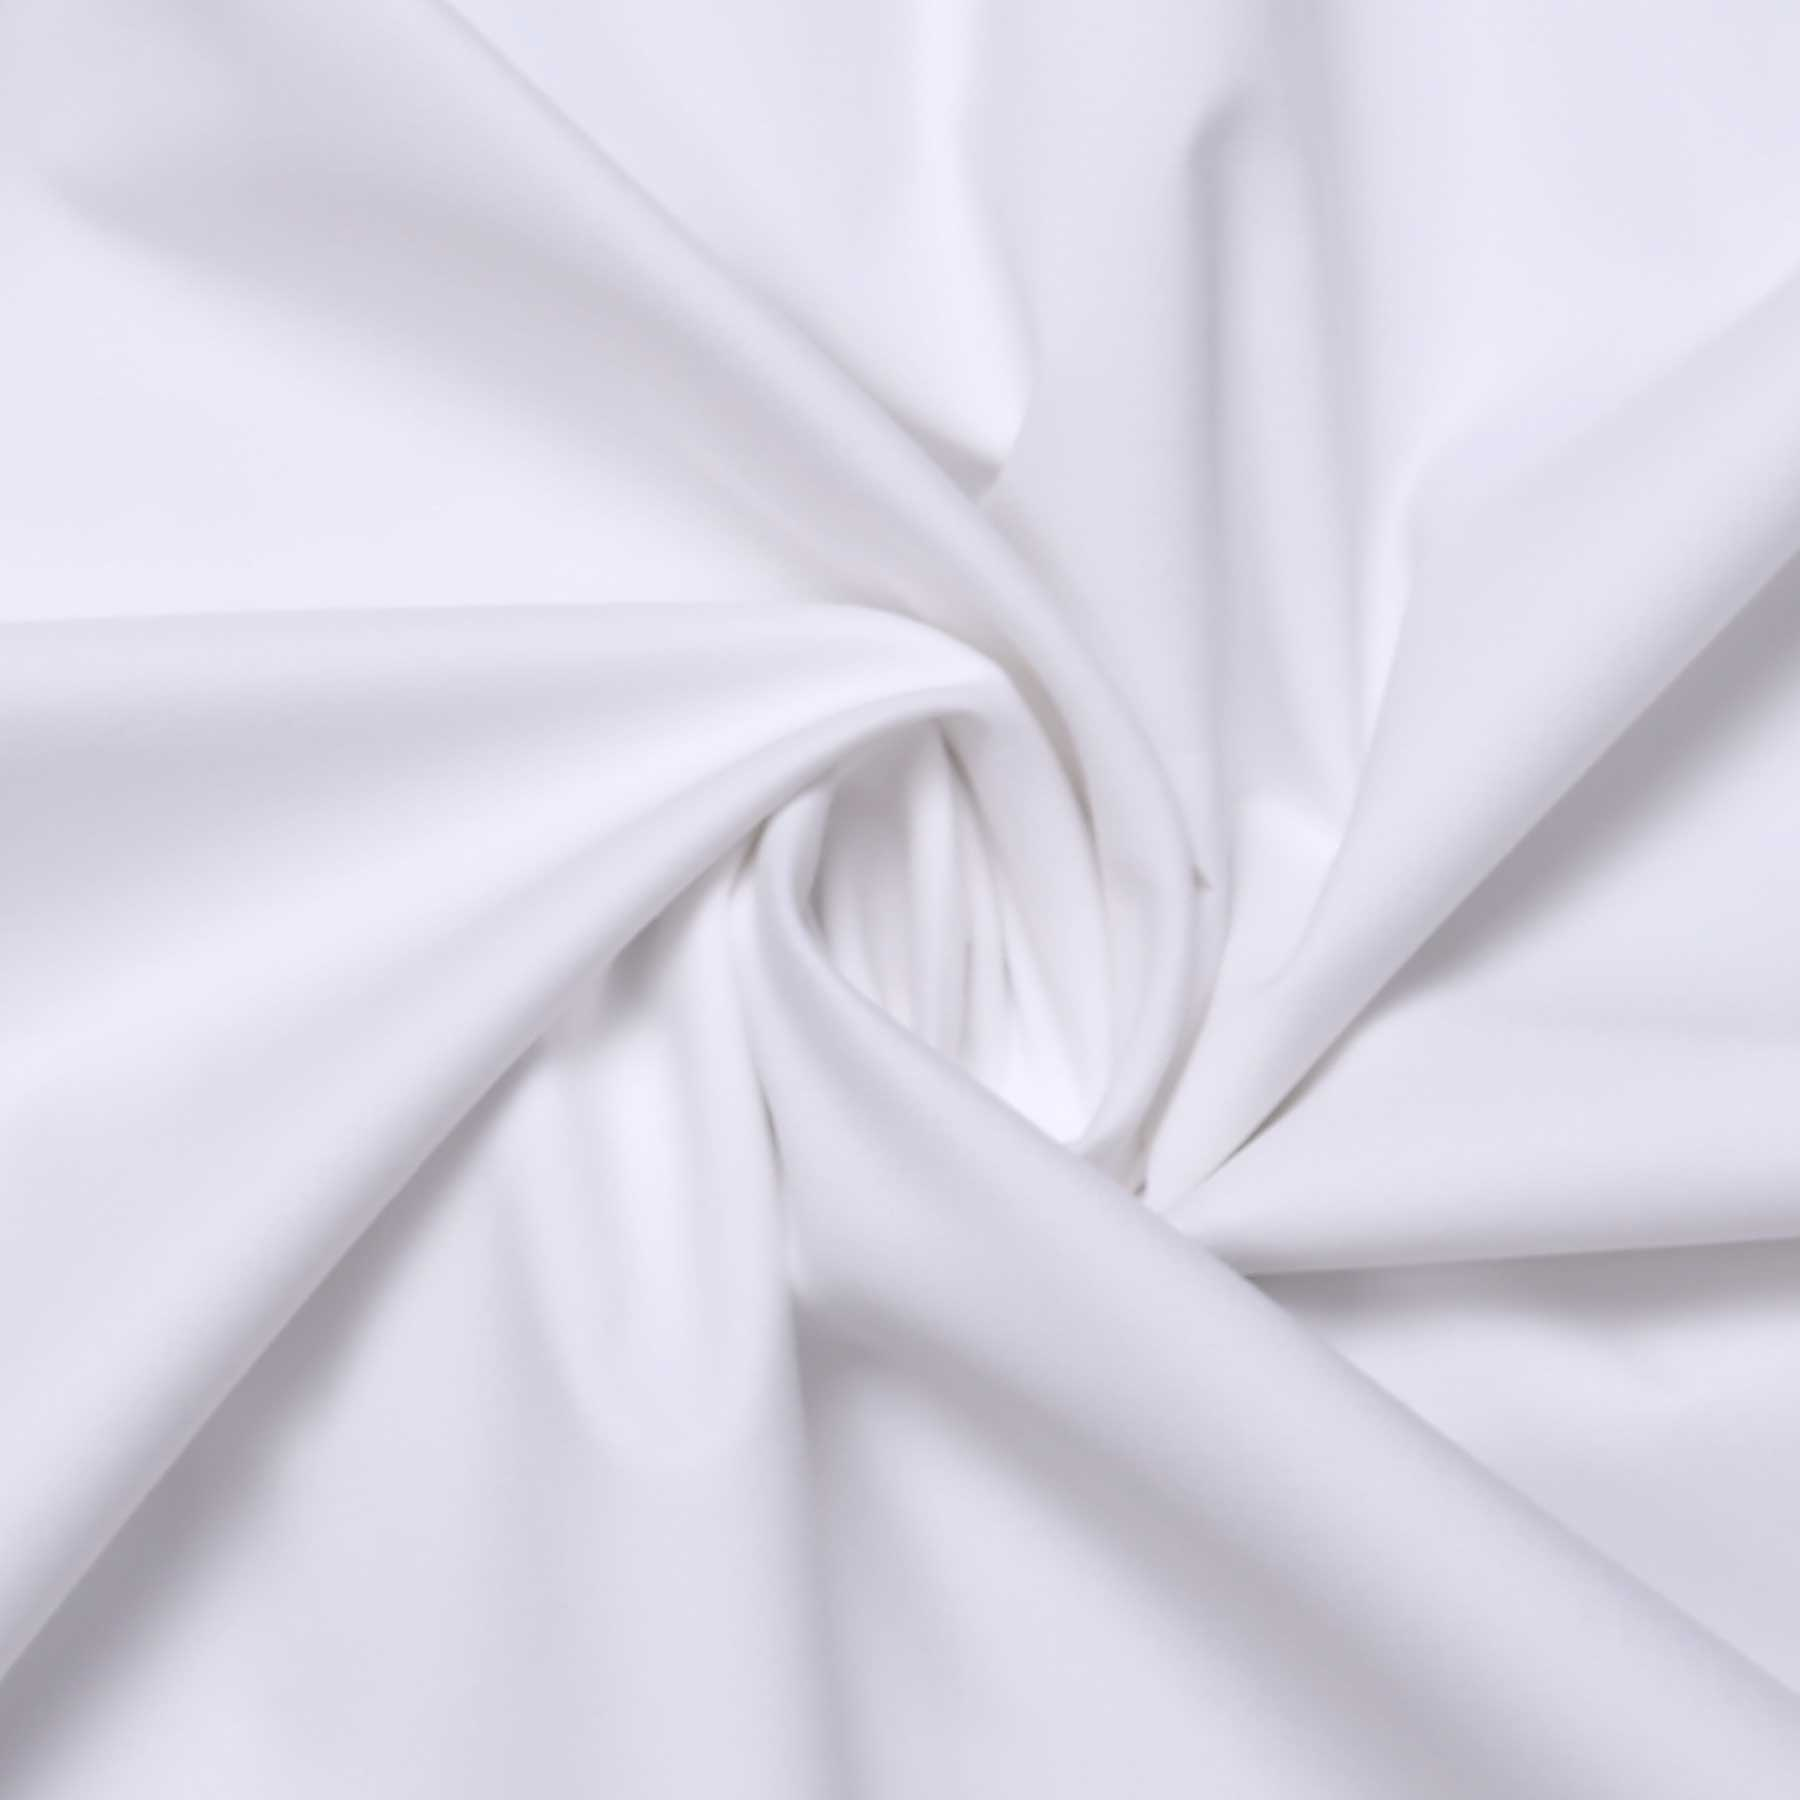 Men's Cotton Plain Unstitched Shirt Fabric (White, Free Size)